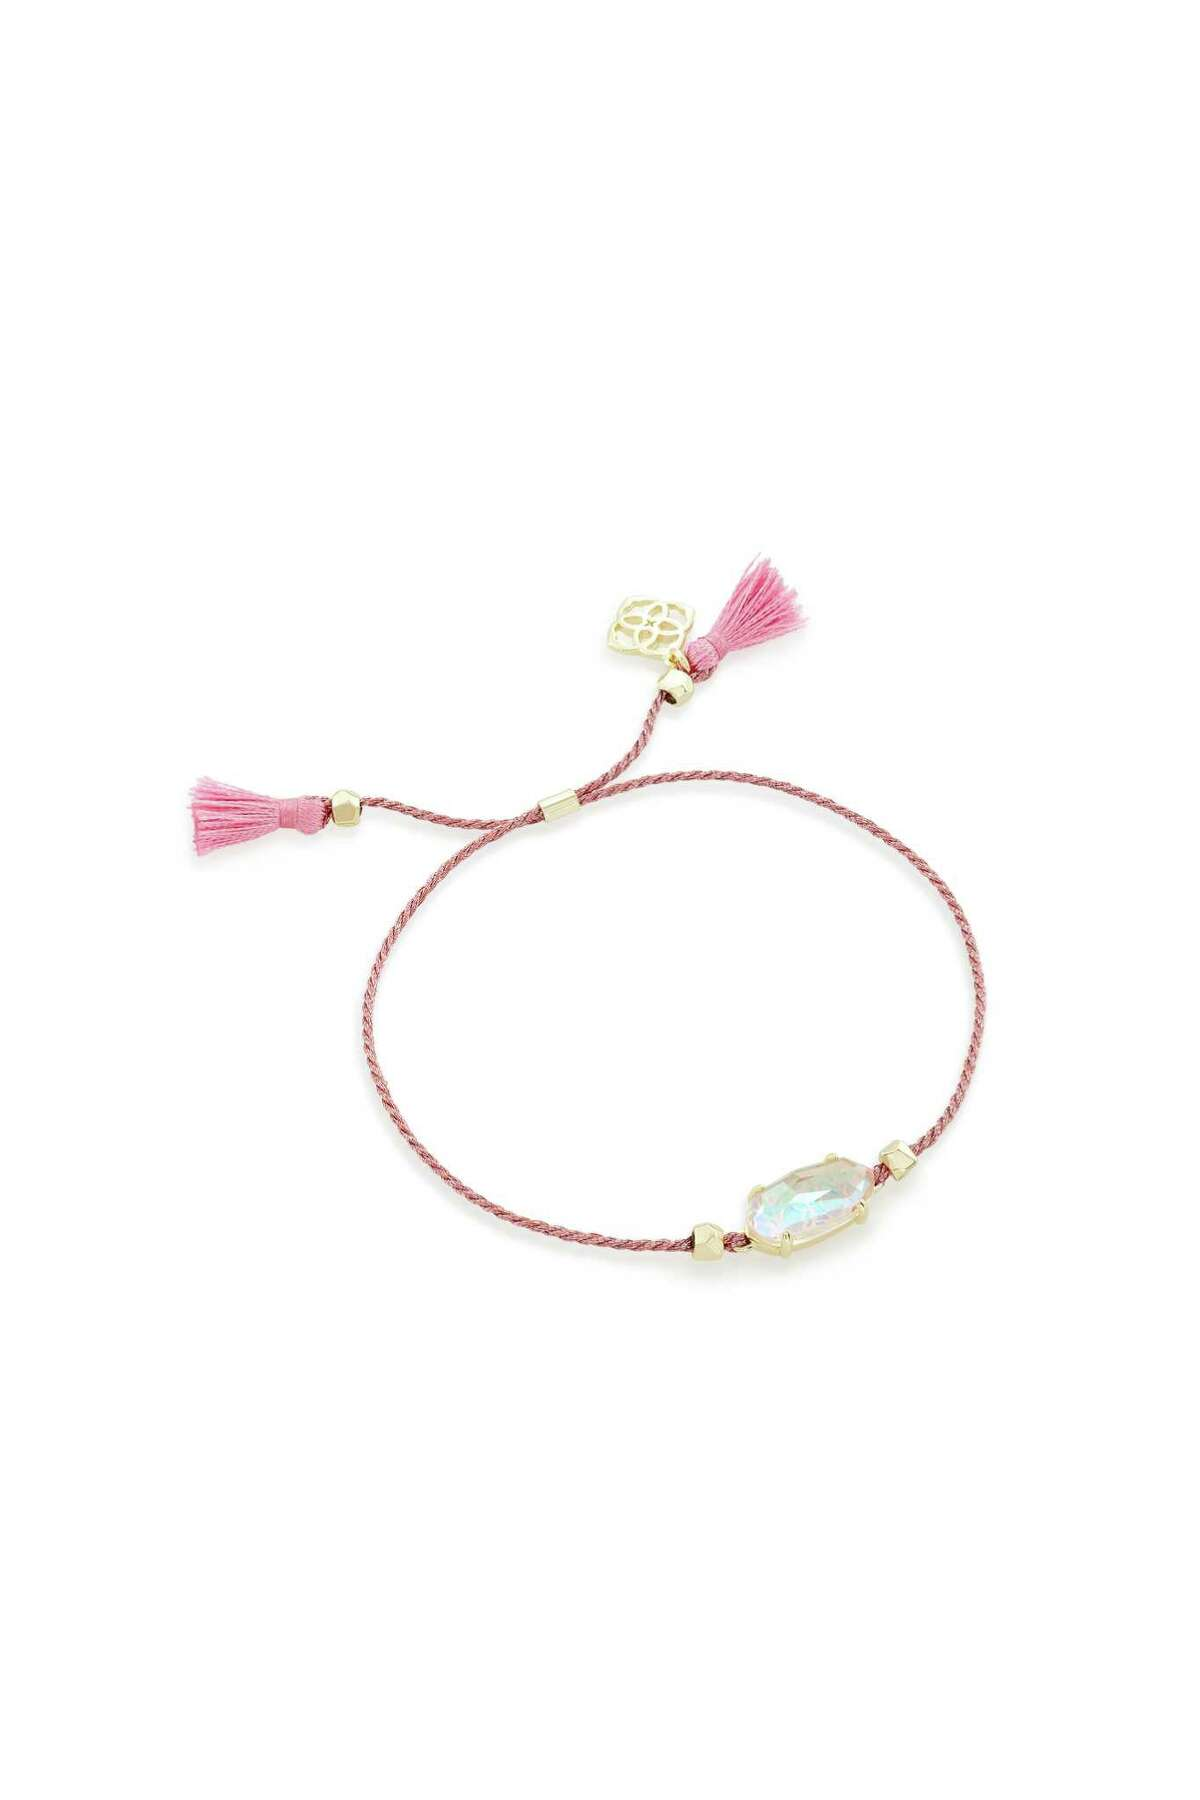 Kendra Scott Everlyne Friendship Bracelet: During October, Kendra Scott donates 20 percent of sales of BCA-minded jewelry to the Breast Cancer Research Foundation; $38 at Kendra Scott stores and kendrascott.com.